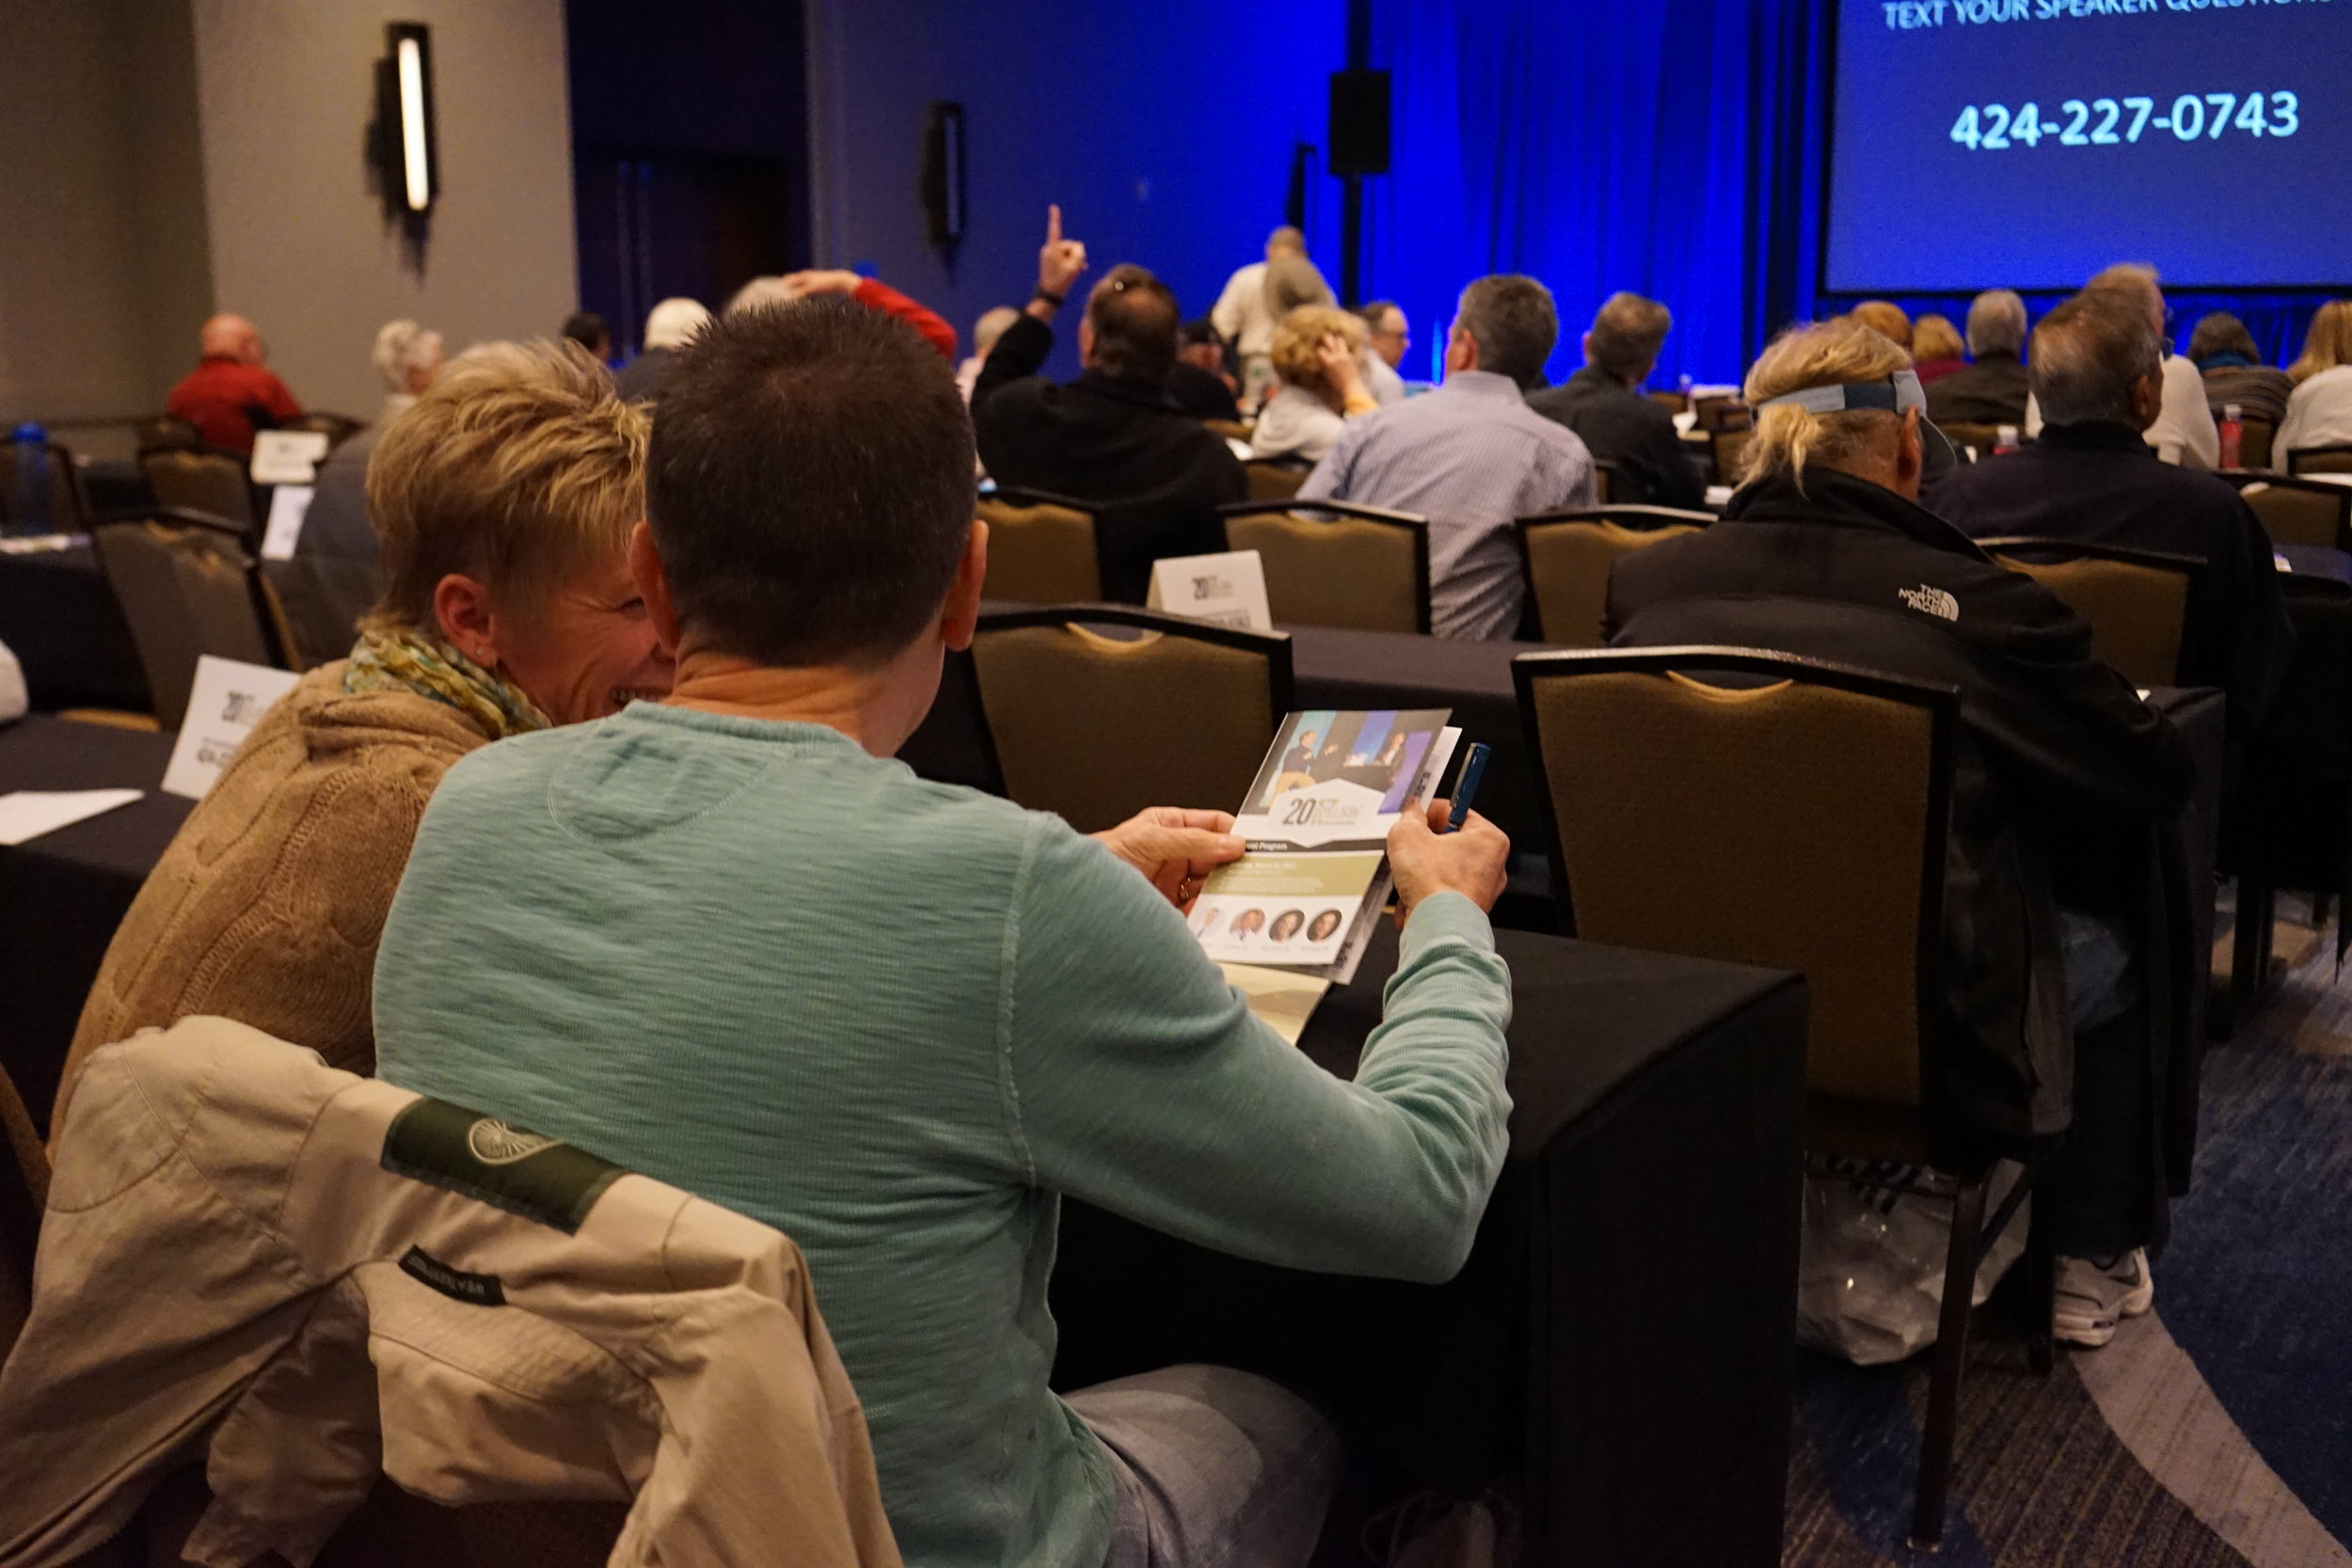 Patient and caregiver attending general session